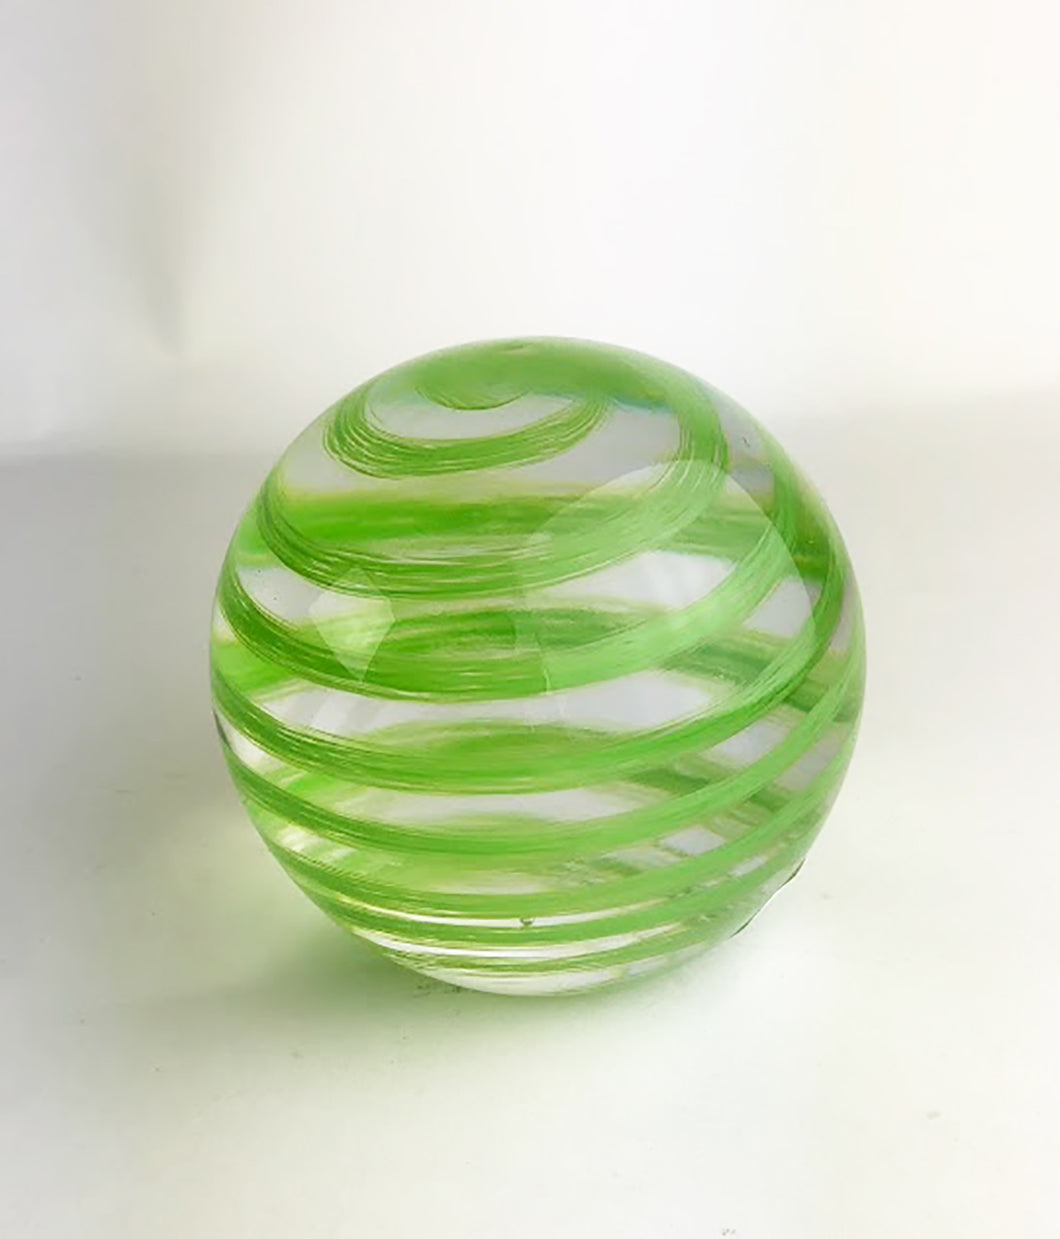 Green and Clear Paperweight (9GR919)